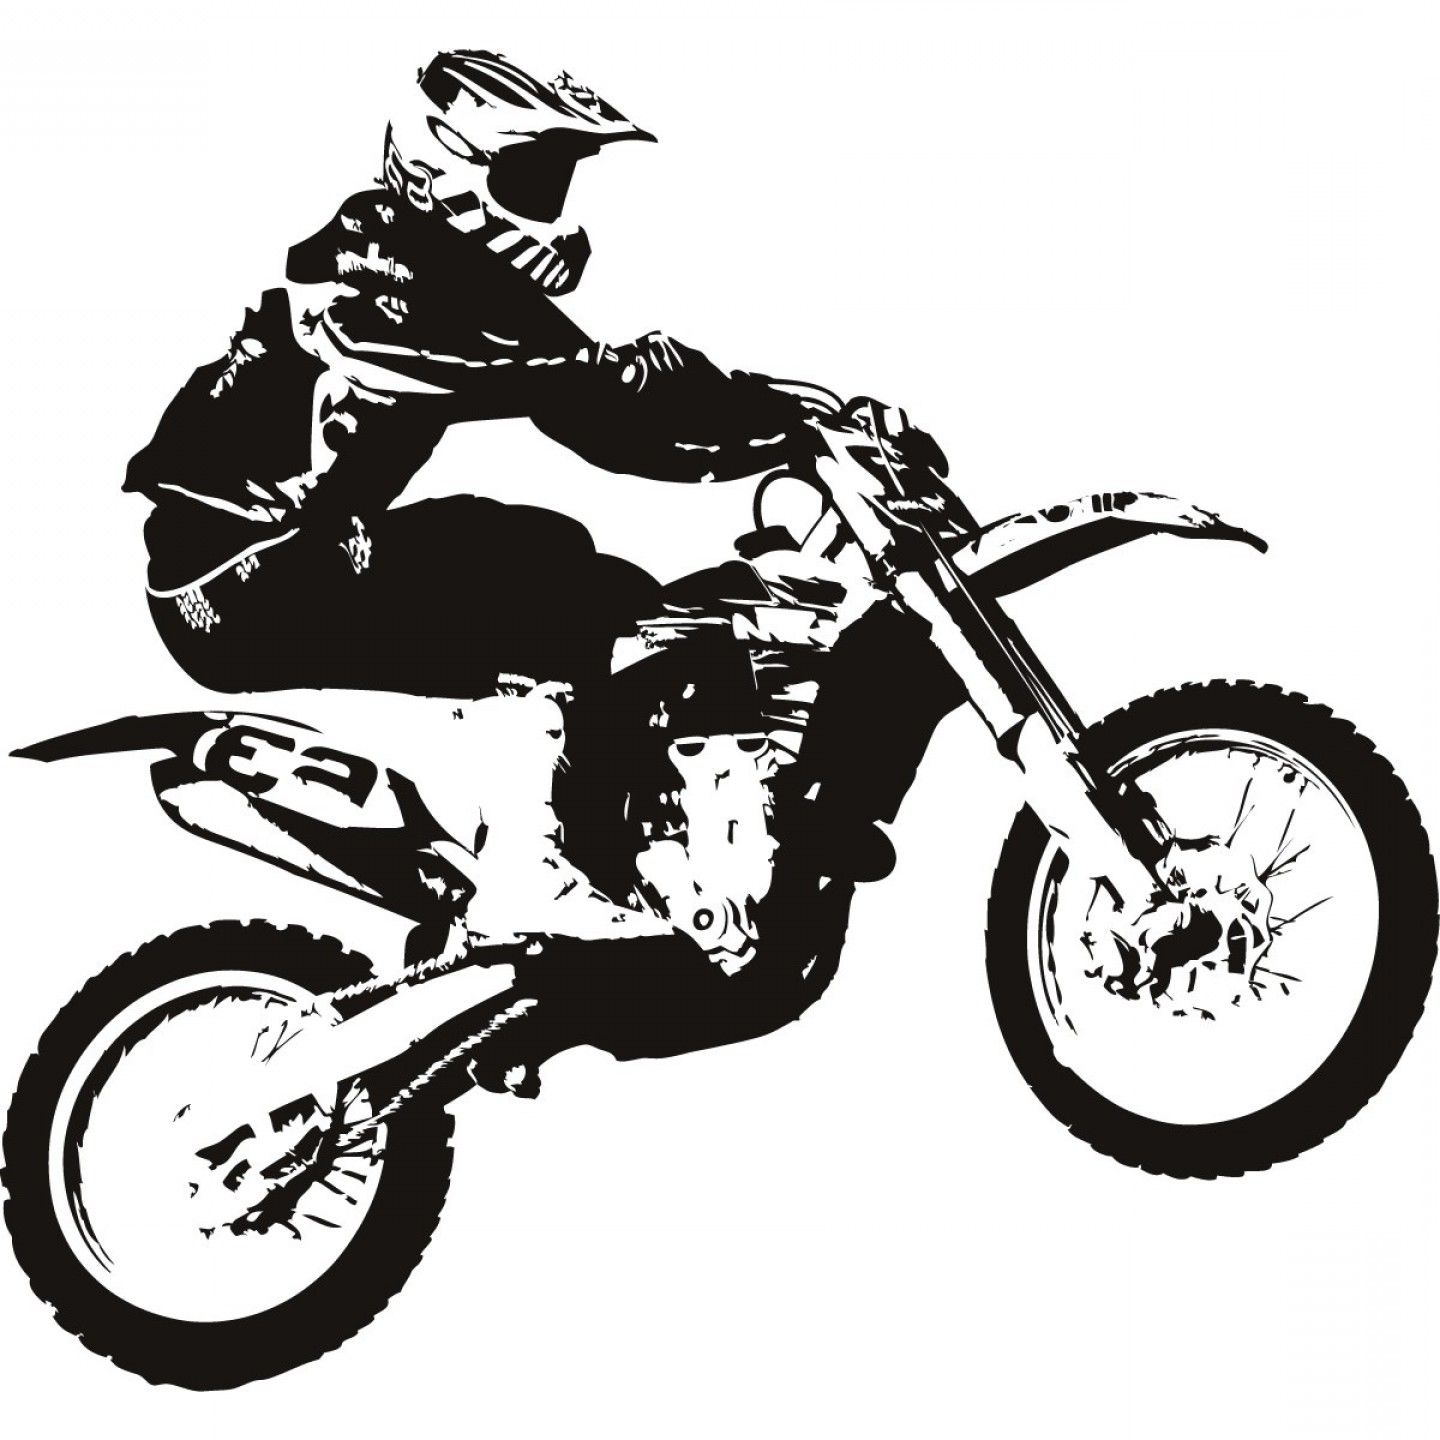 Vintage dirt bike clipart image free stock Best Dirt Bike Vector Draw: Top Blue Dirt Bike Cliparts ... image free stock